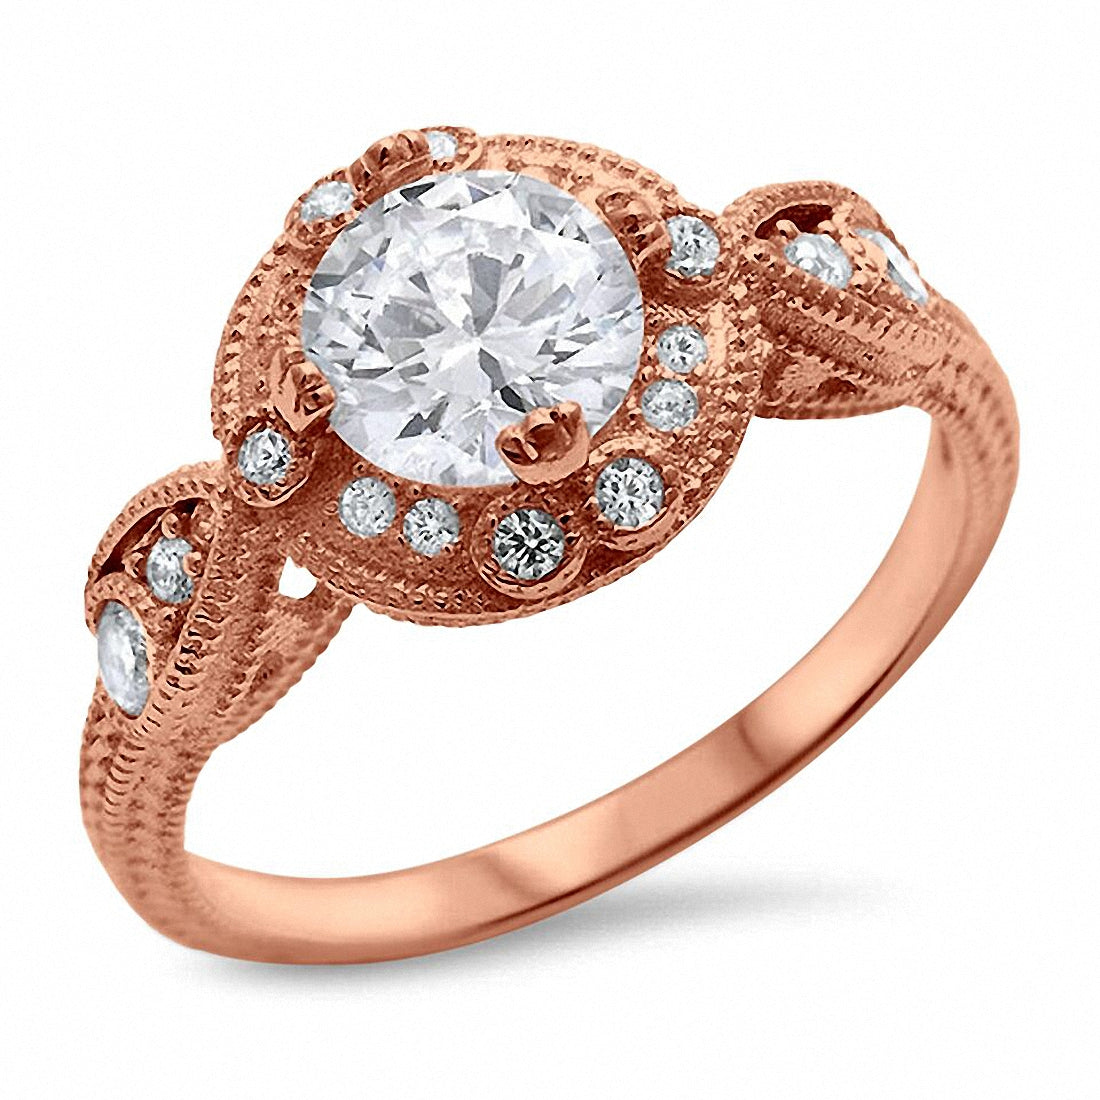 Art Deco Design Solitaire Wedding Ring CZ 925 Sterling